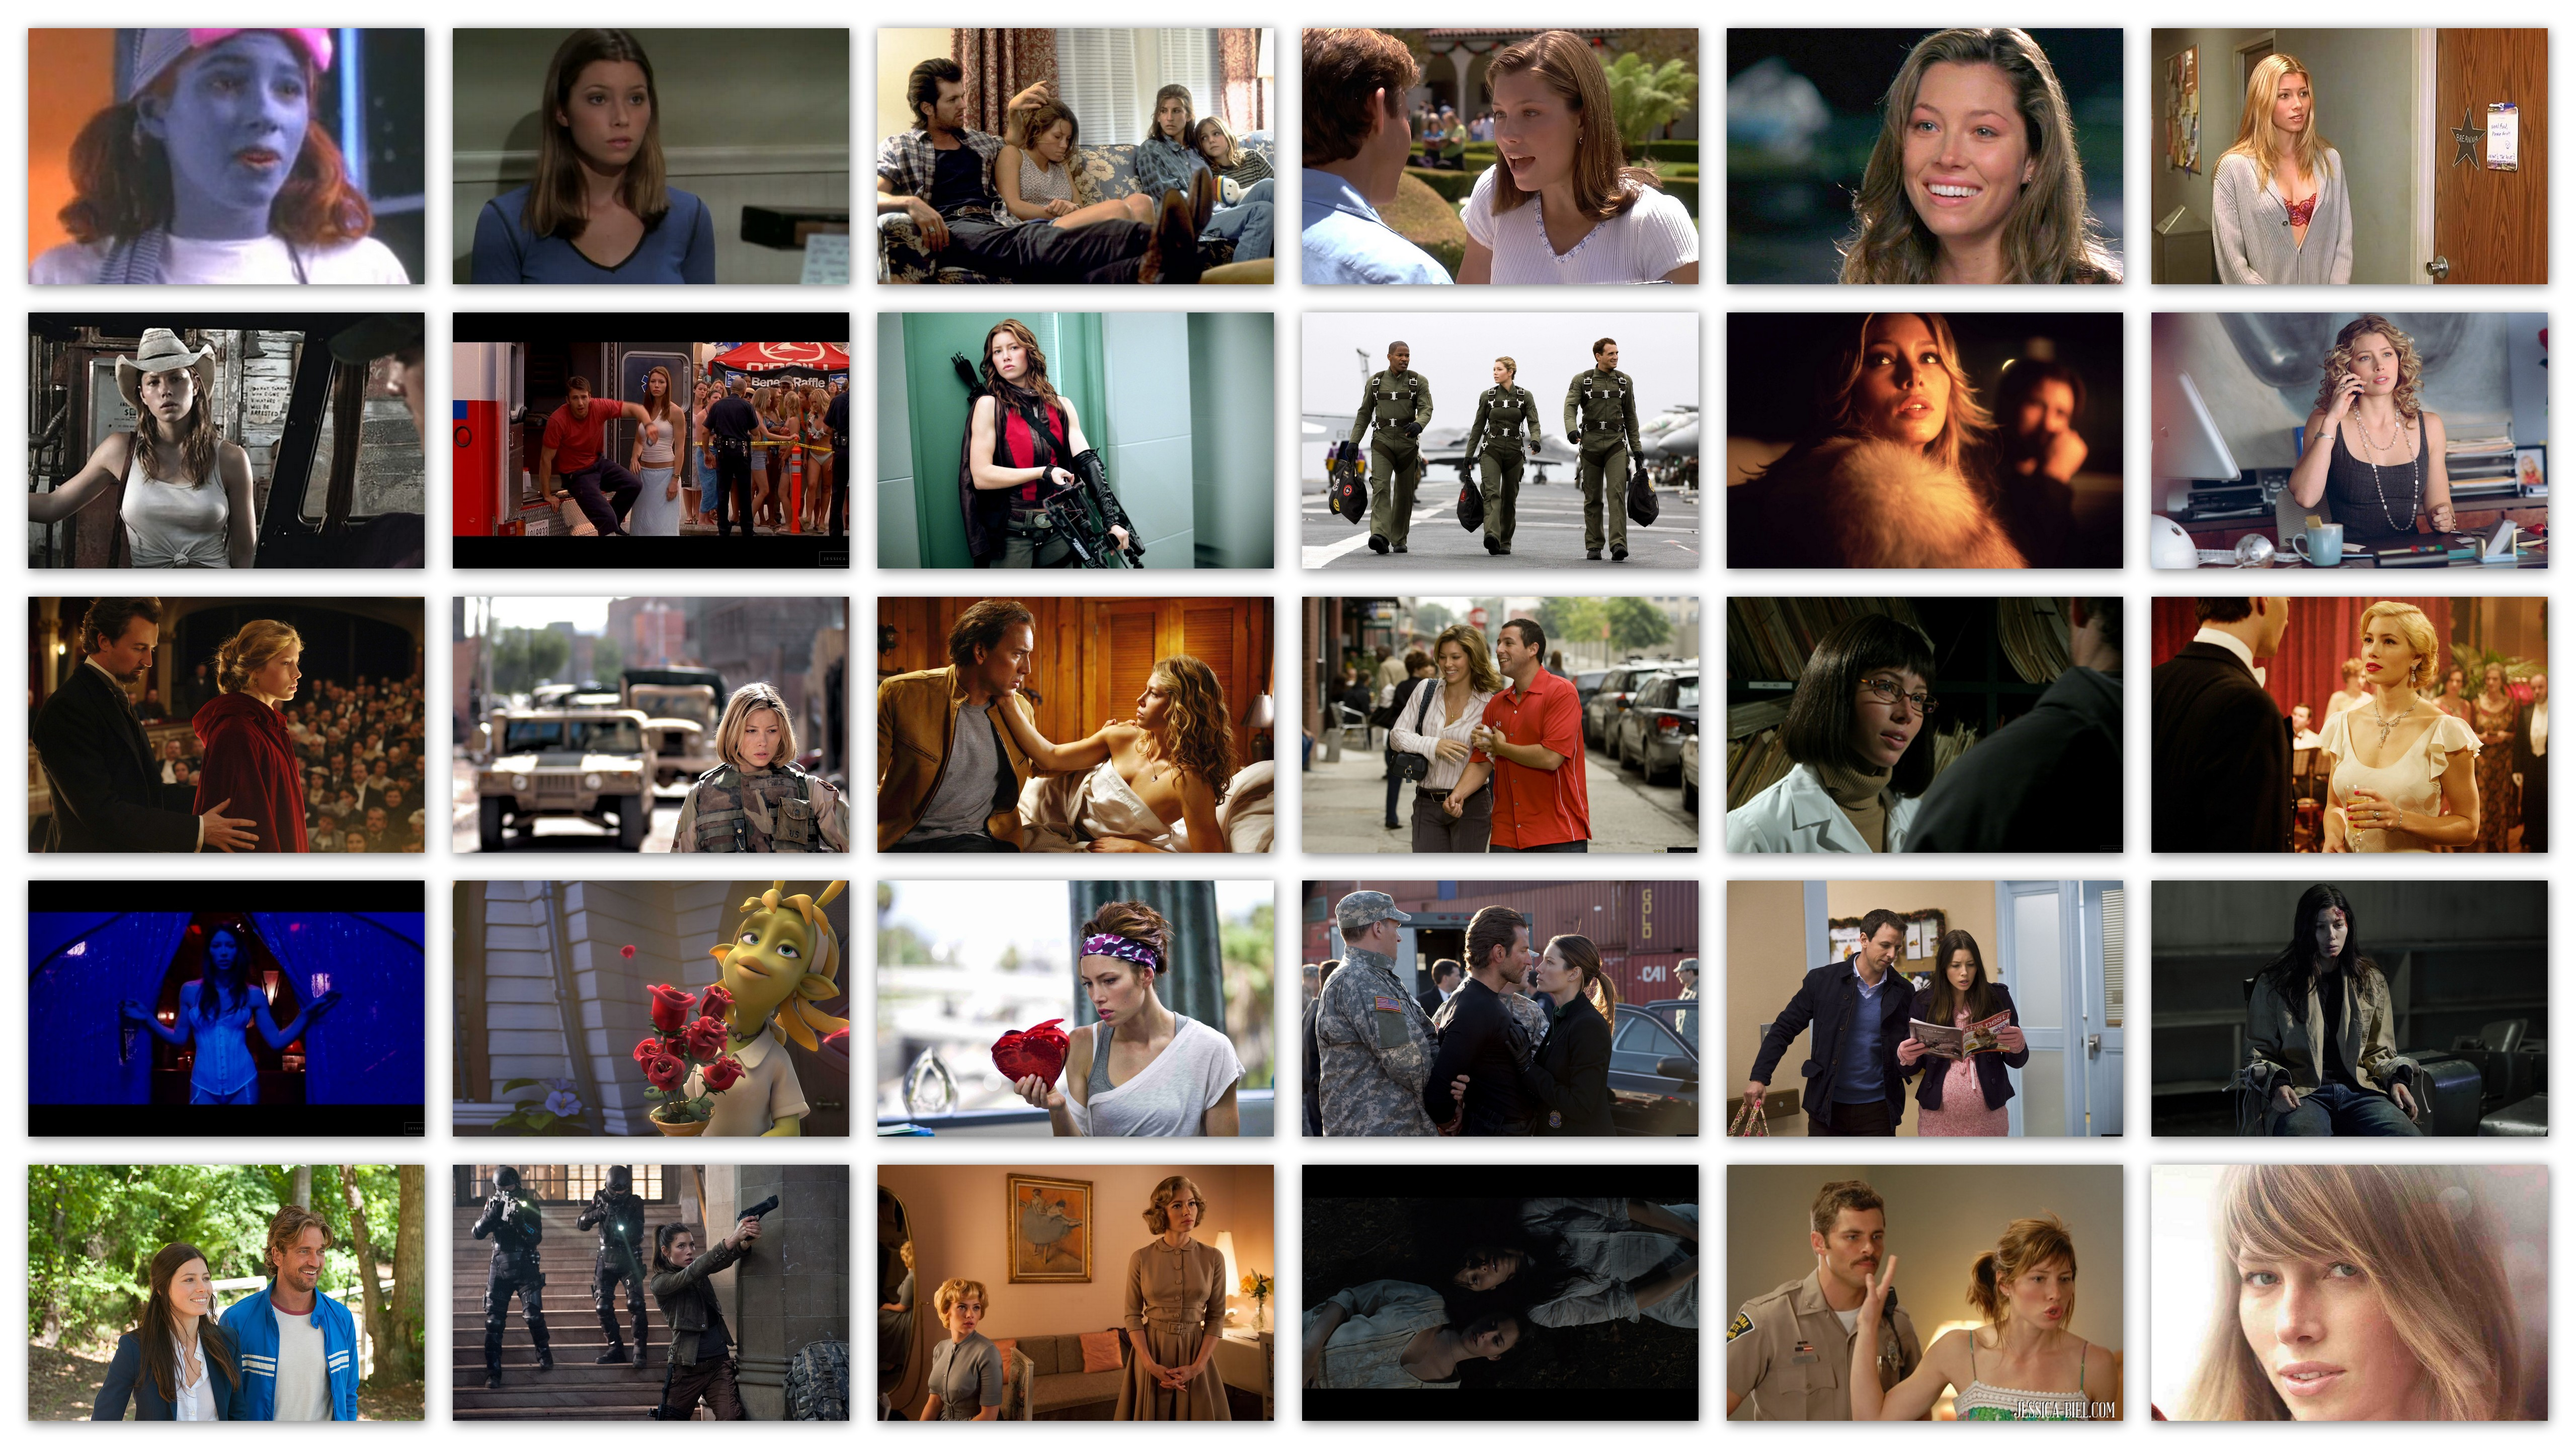 Overview in pictures of the roles and movies of Jessica Biel